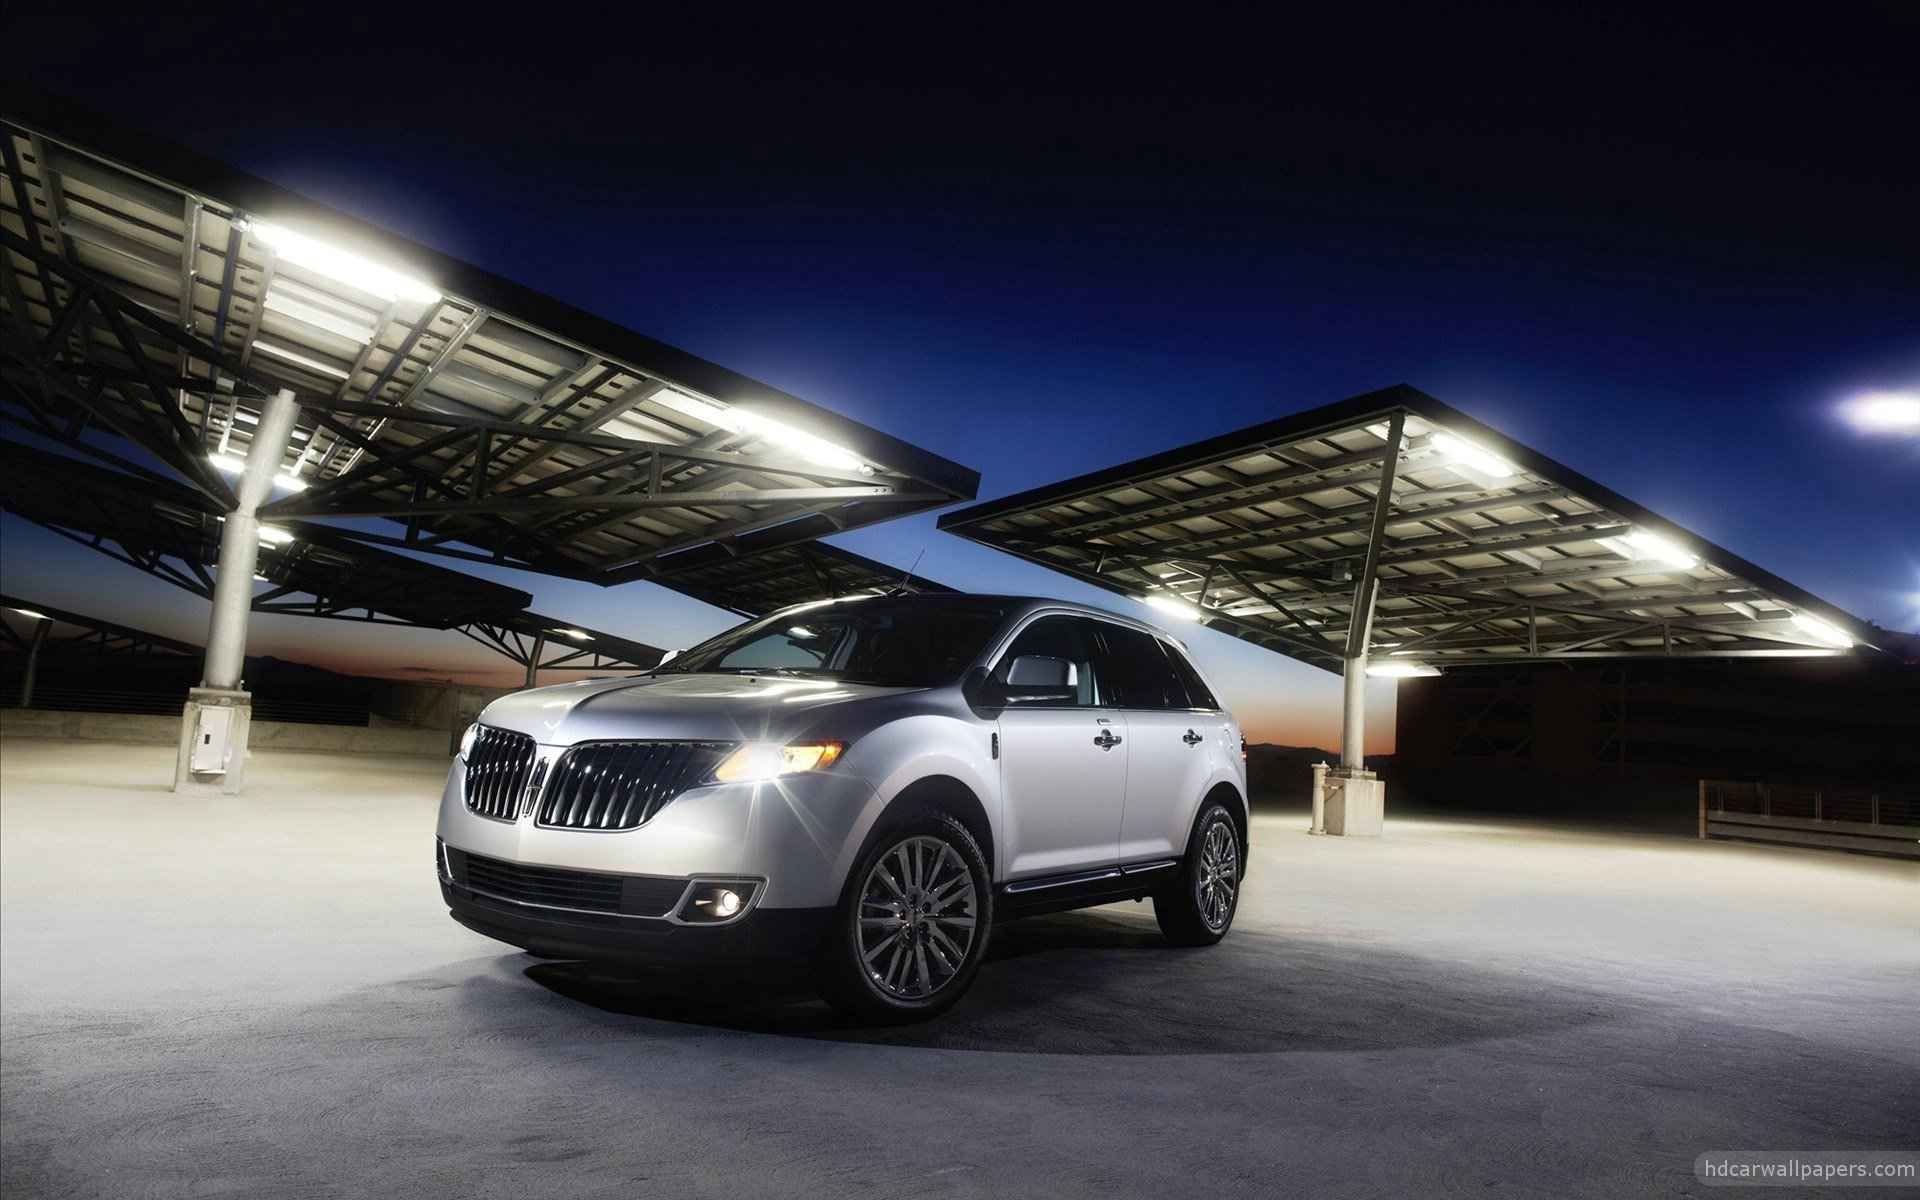 Latest 2012 Lincoln Mkx 3 Wallpaper Hd Car Wallpapers Id 2218 Free Download